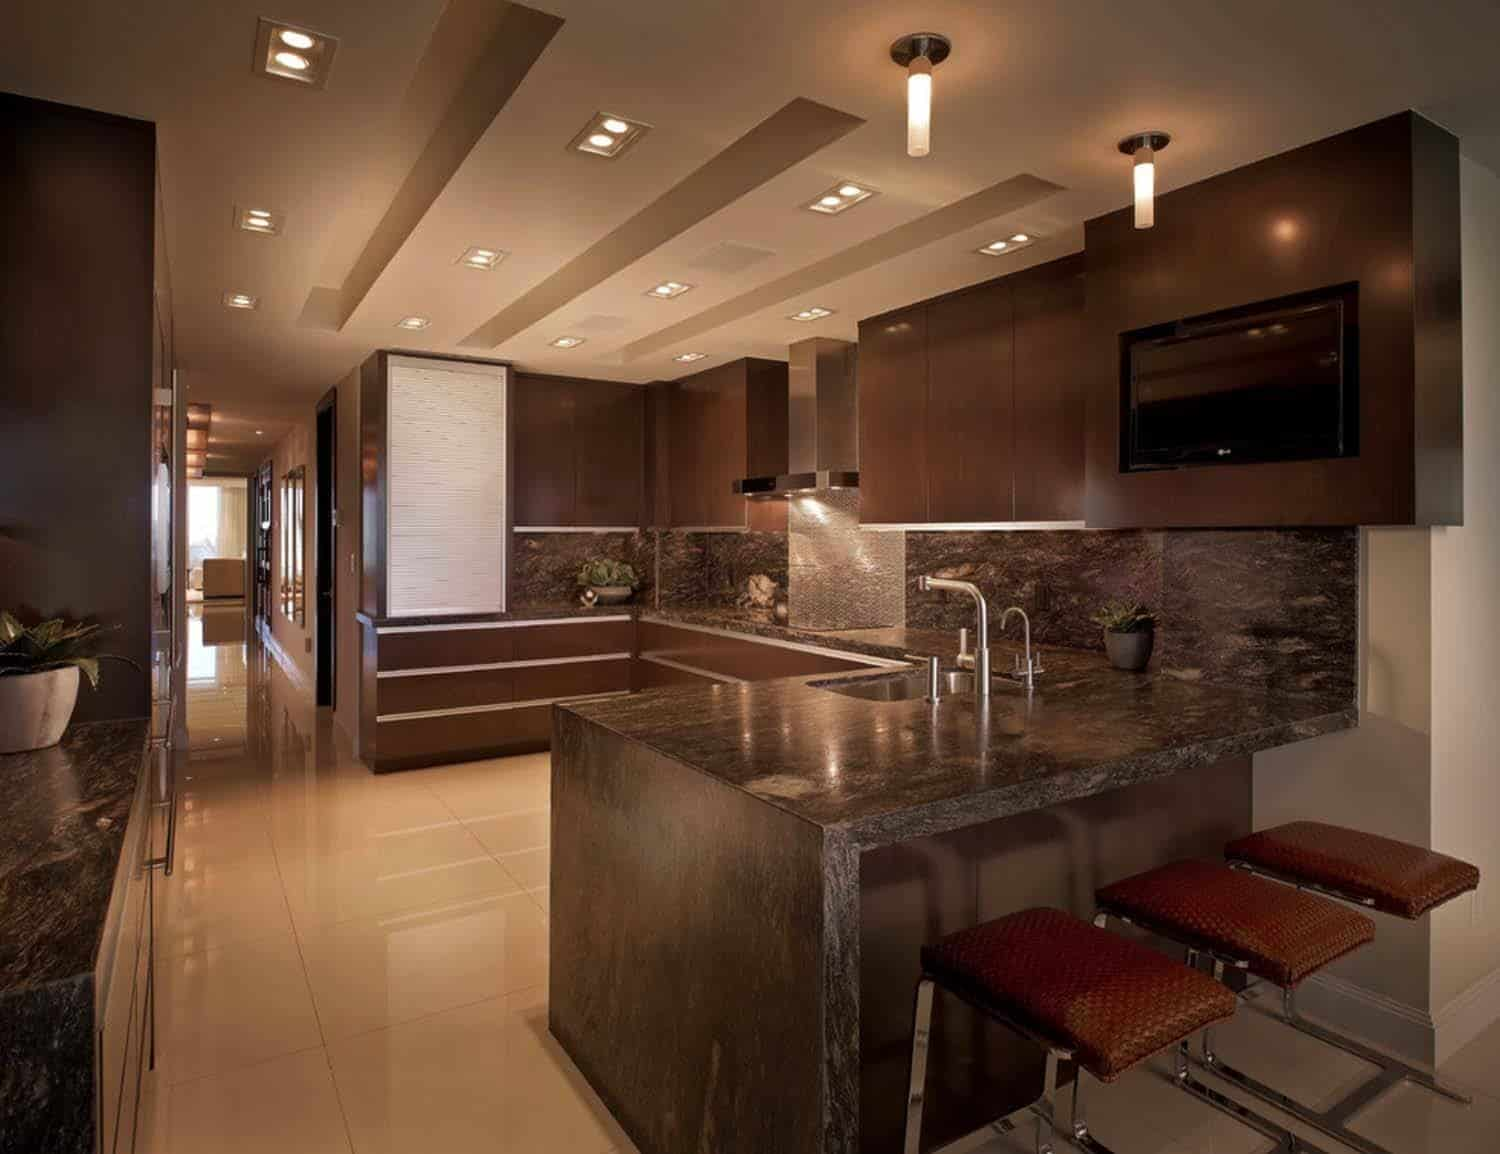 Contemporary Residence-Interiors by Steven G-10-1 Kindesign